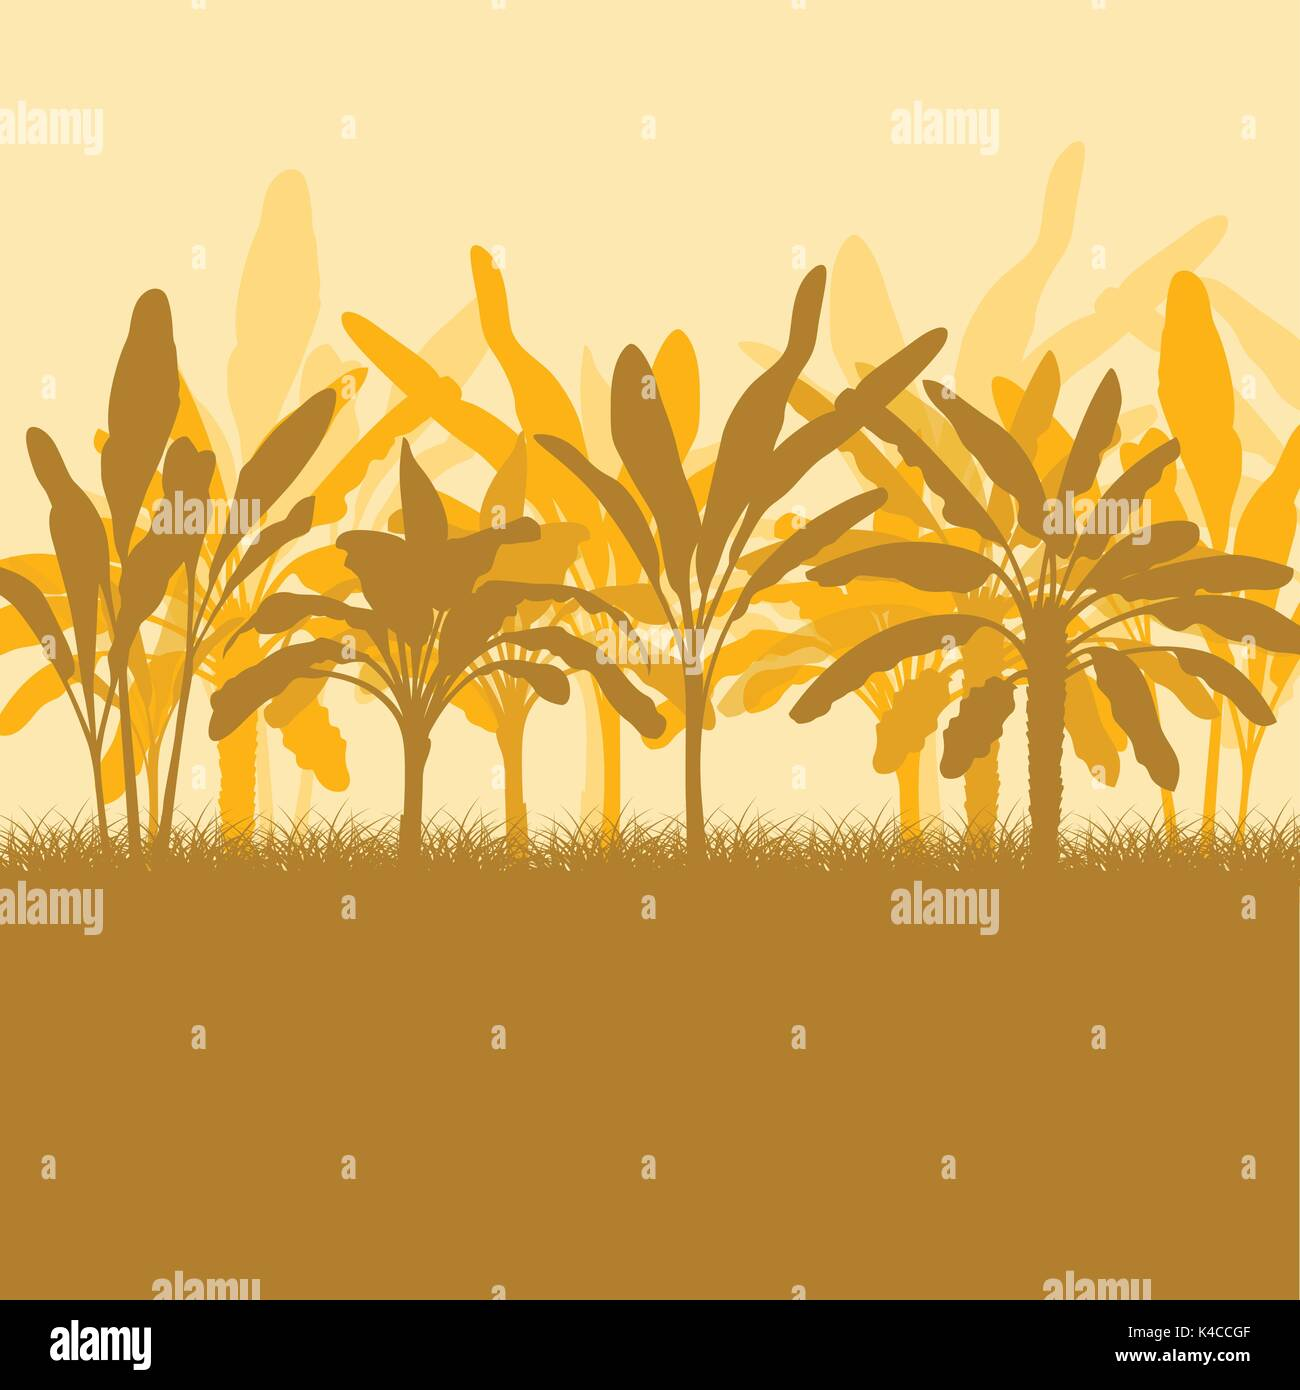 Farm Field Illustration